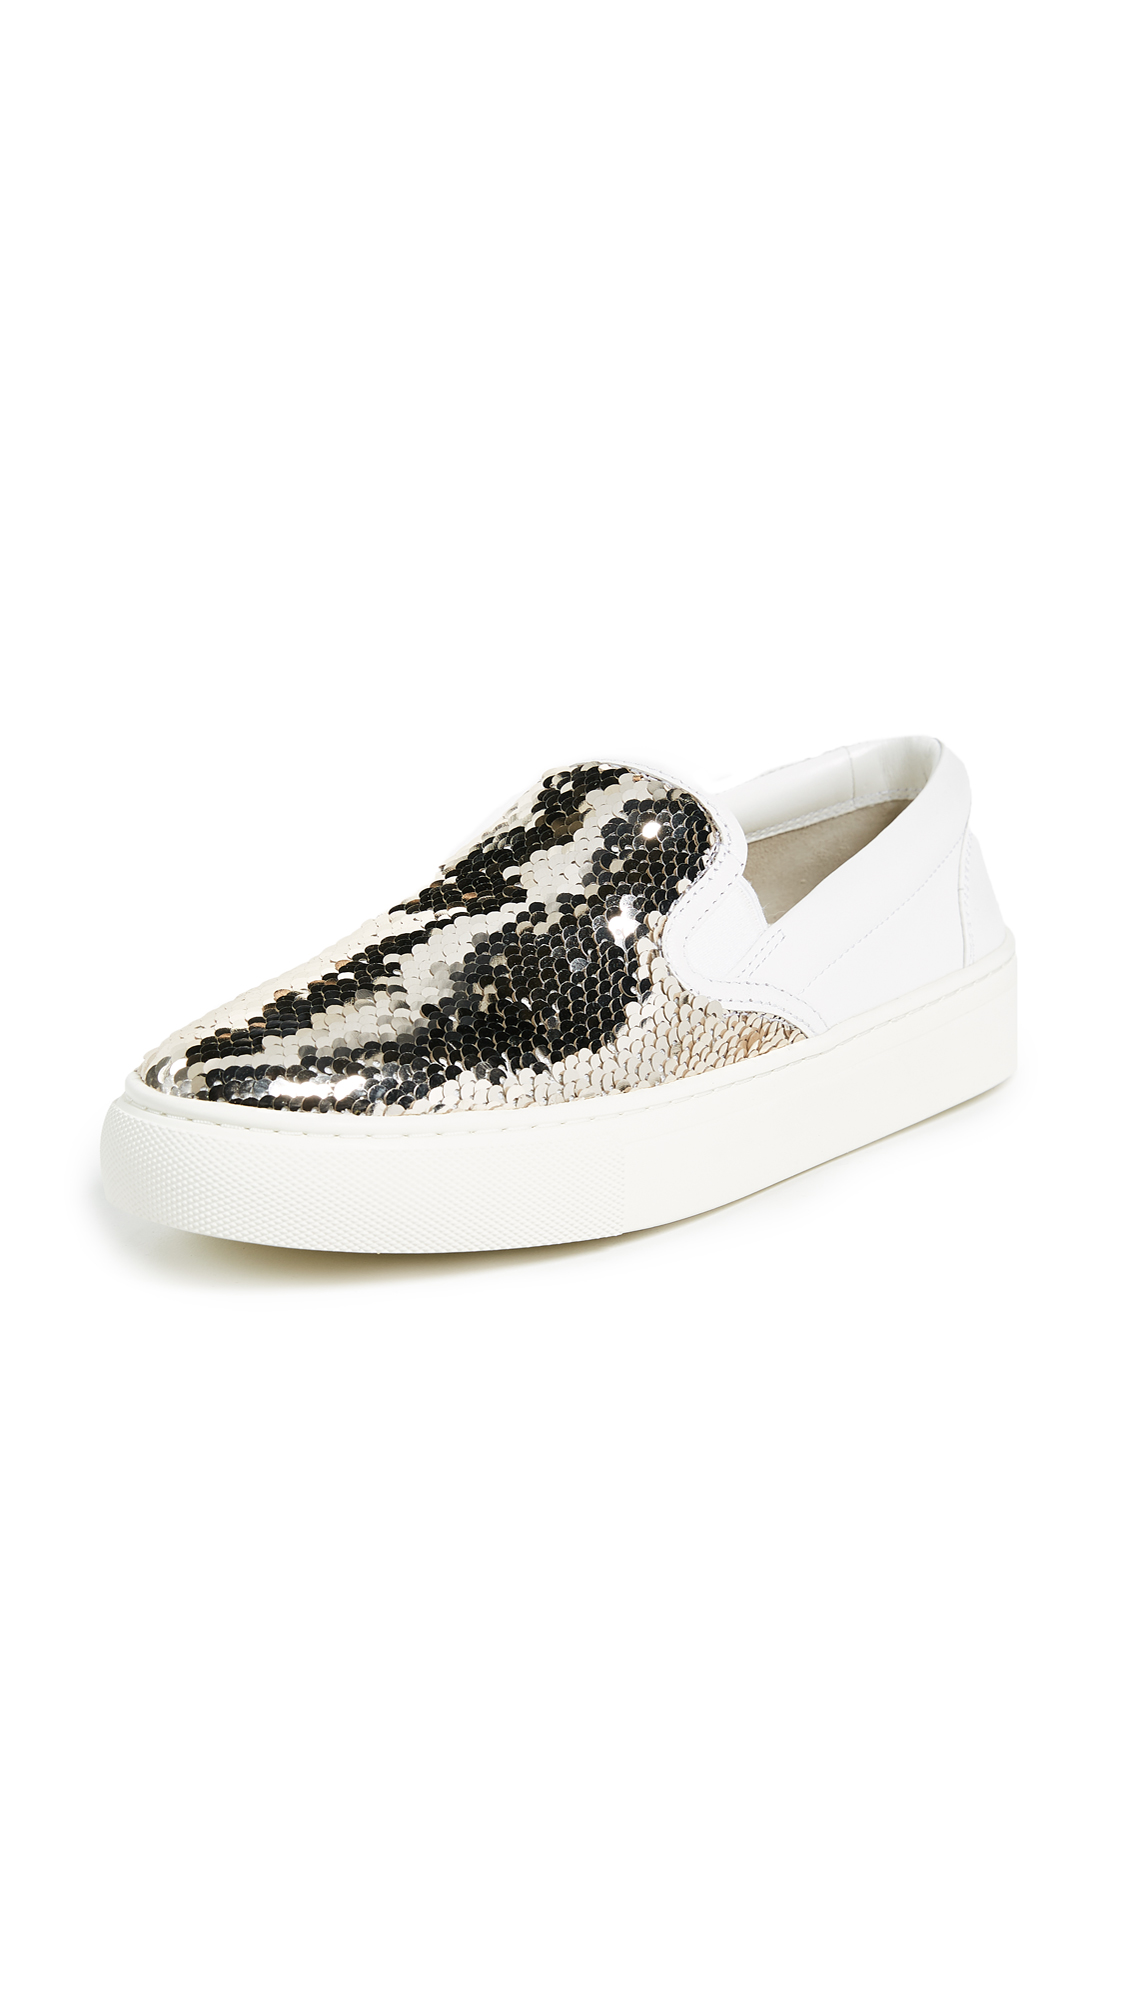 Tory Burch Carter Slip On Sneakers - Spark Gold/White